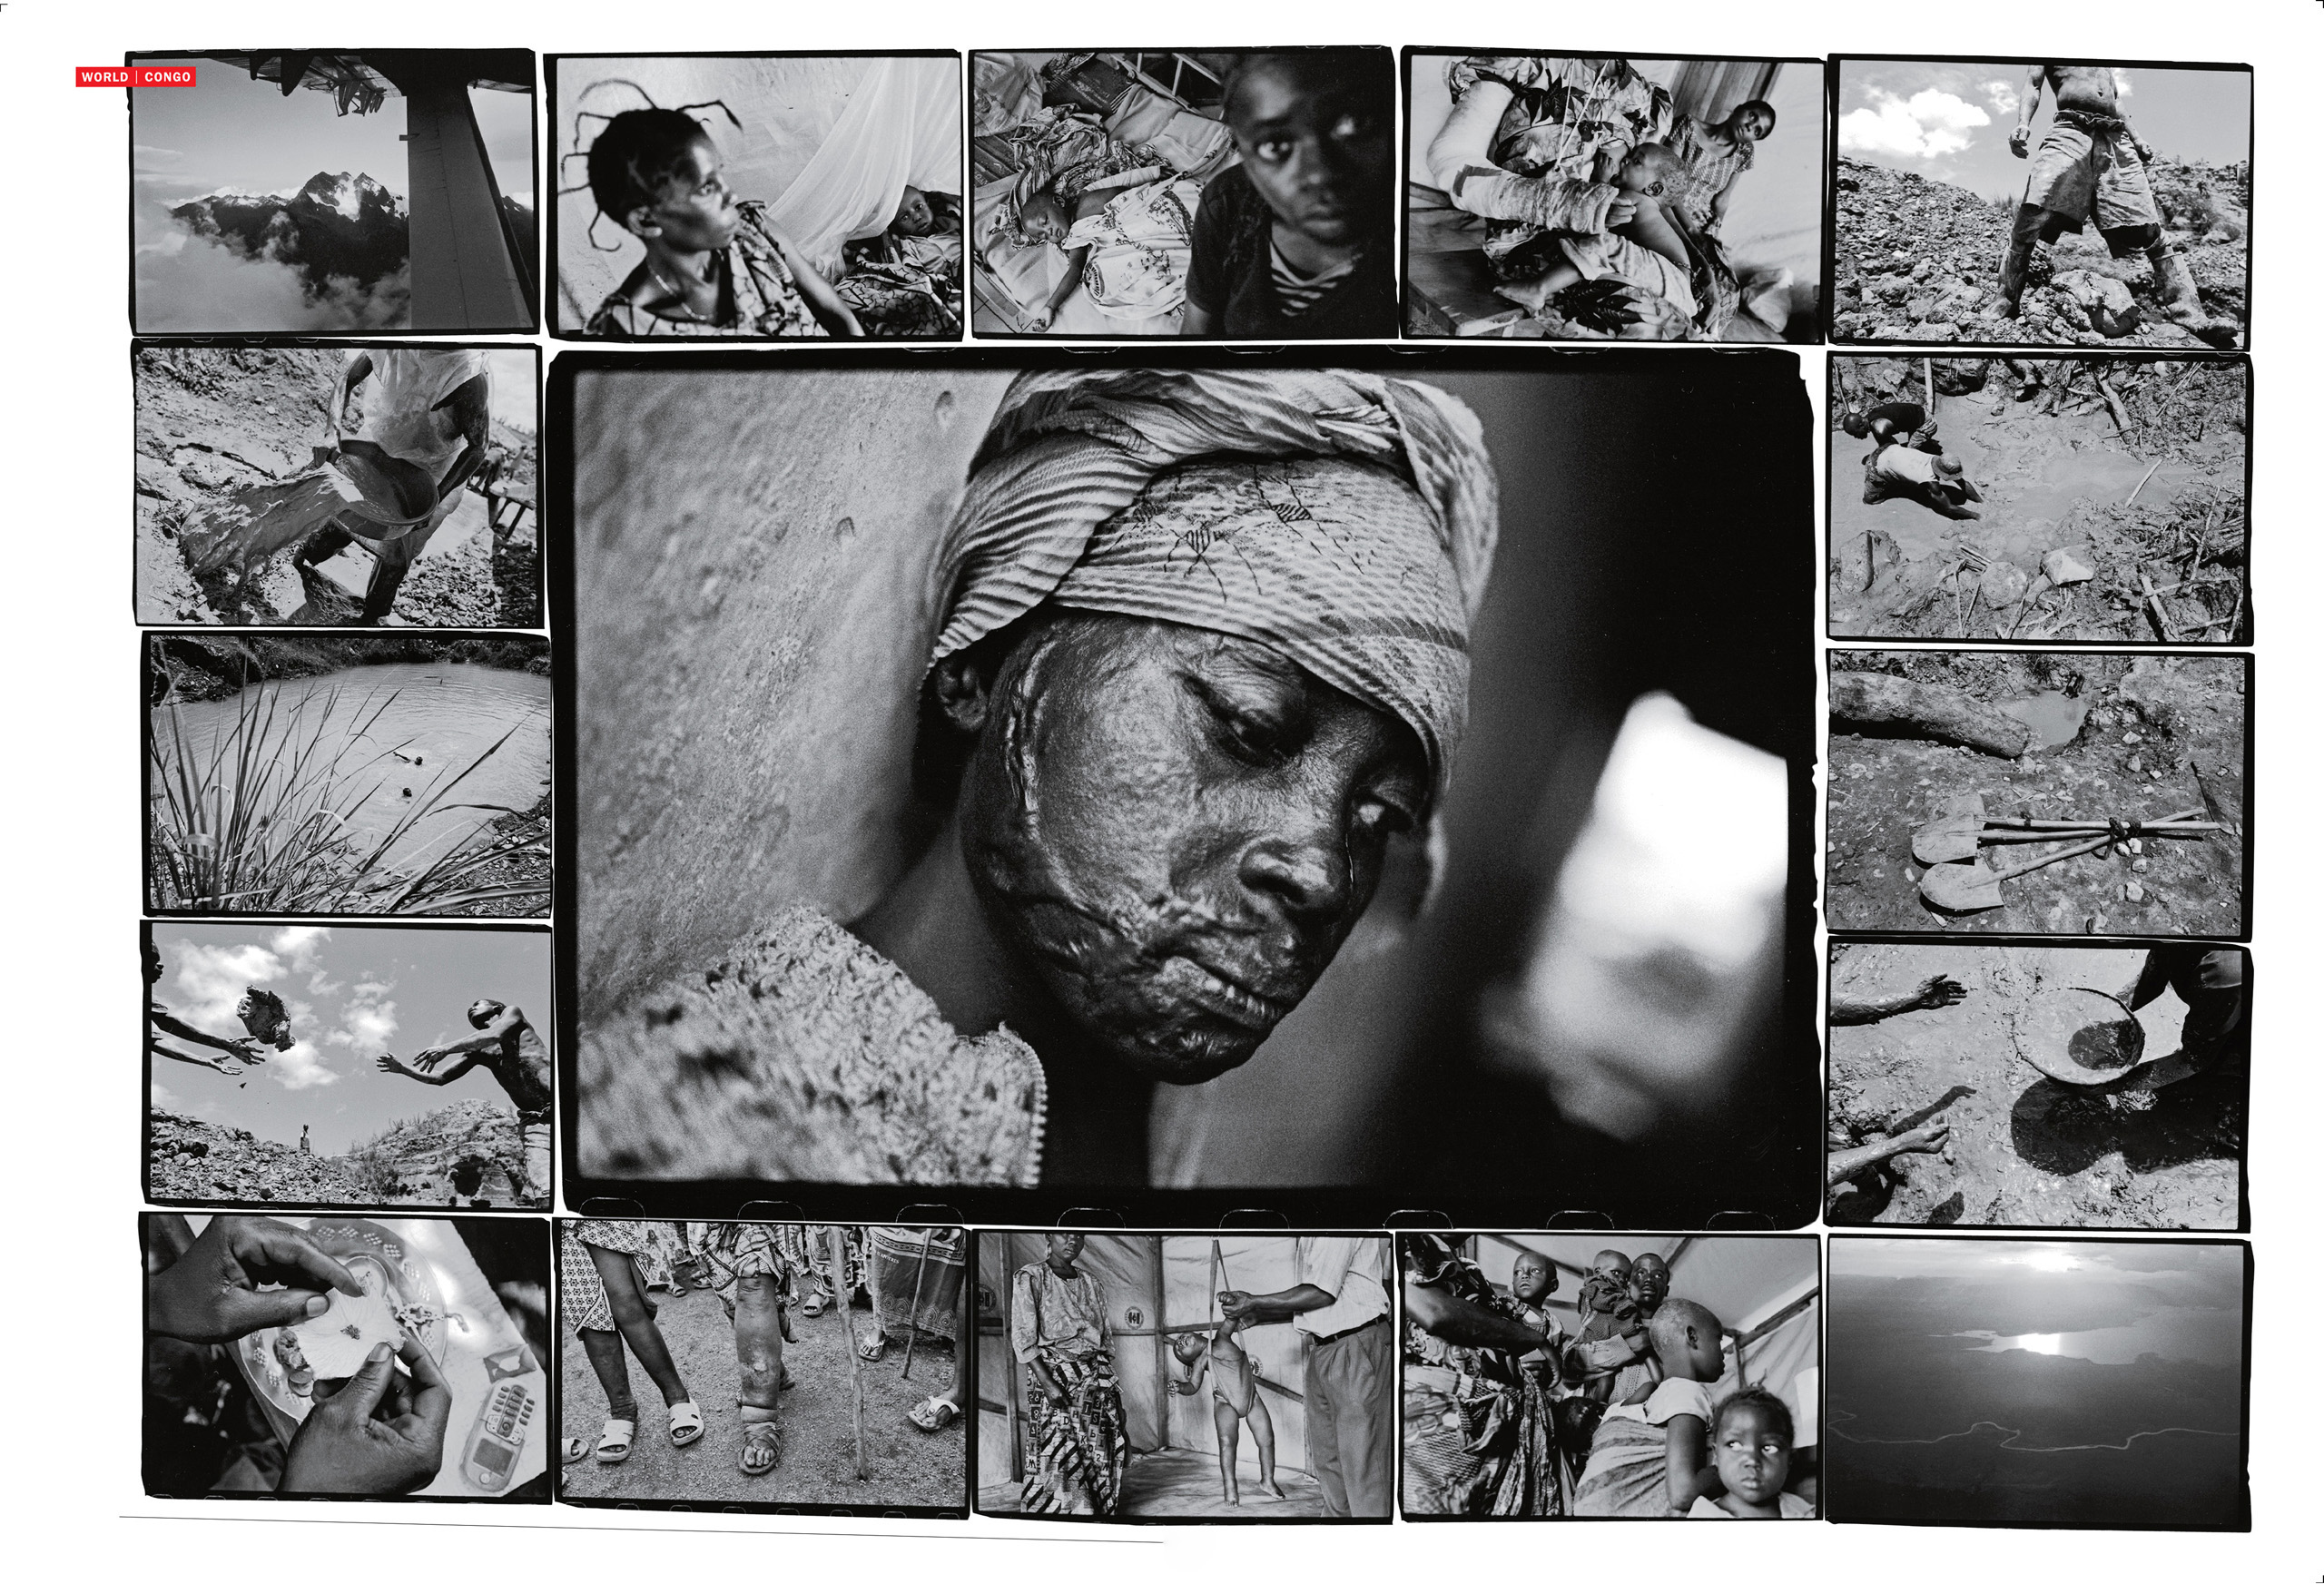 From the March 9, 2009 issue of TIME. We took a different approach in 2008 and 2009, after James Nachtwey came back from a trip documenting the war in eastern Congo. It was a year where the news cycle was dominated by two main stories: the Presidential election and the economic crisis, leaving us with fewer pages to tell long stories in depth photographically. Nachtwey overcame that hurdle by creating these montages, which he presented to the magazine. We agreed to publish them immediately on first look.